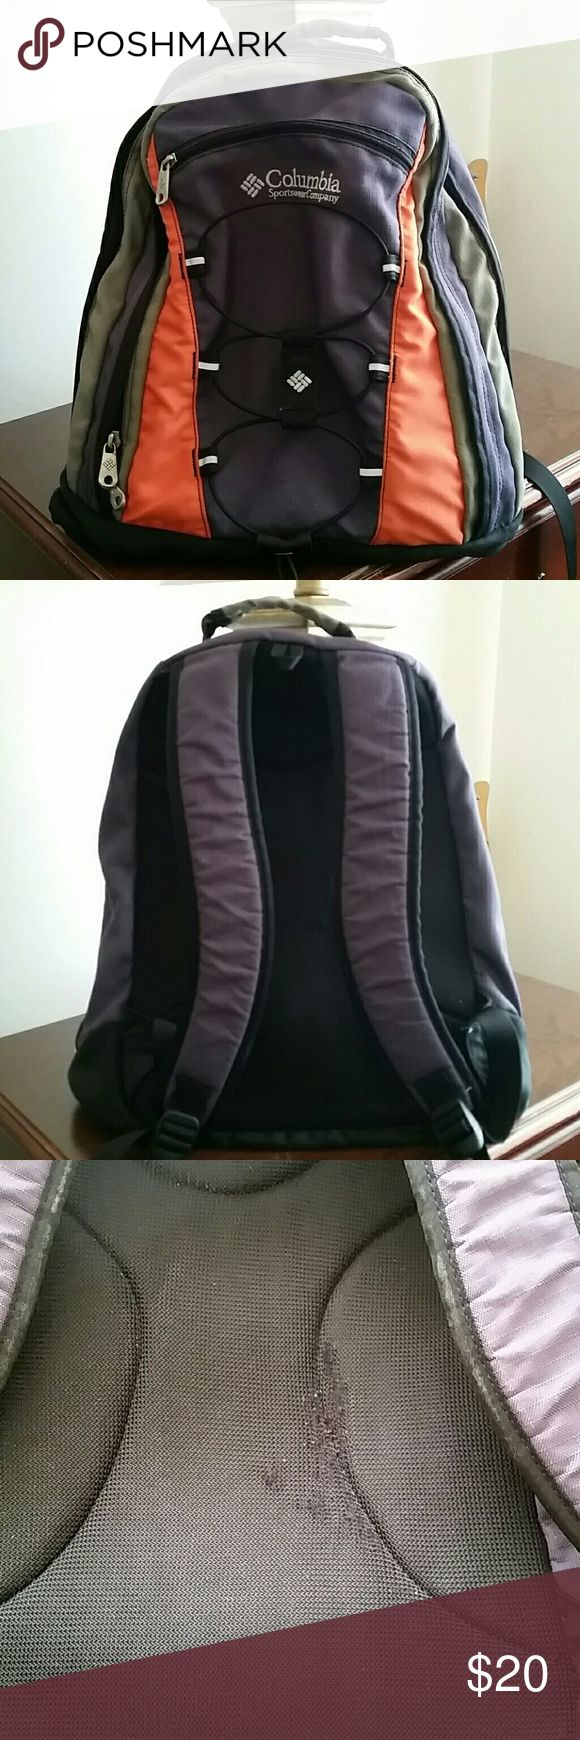 Pre Loved Columbia Backpack Able To Fit 15 Laptop Inside Replaced Old Shock Cord With New One Minor Fray On Back Pic 3 Bags Backpacks